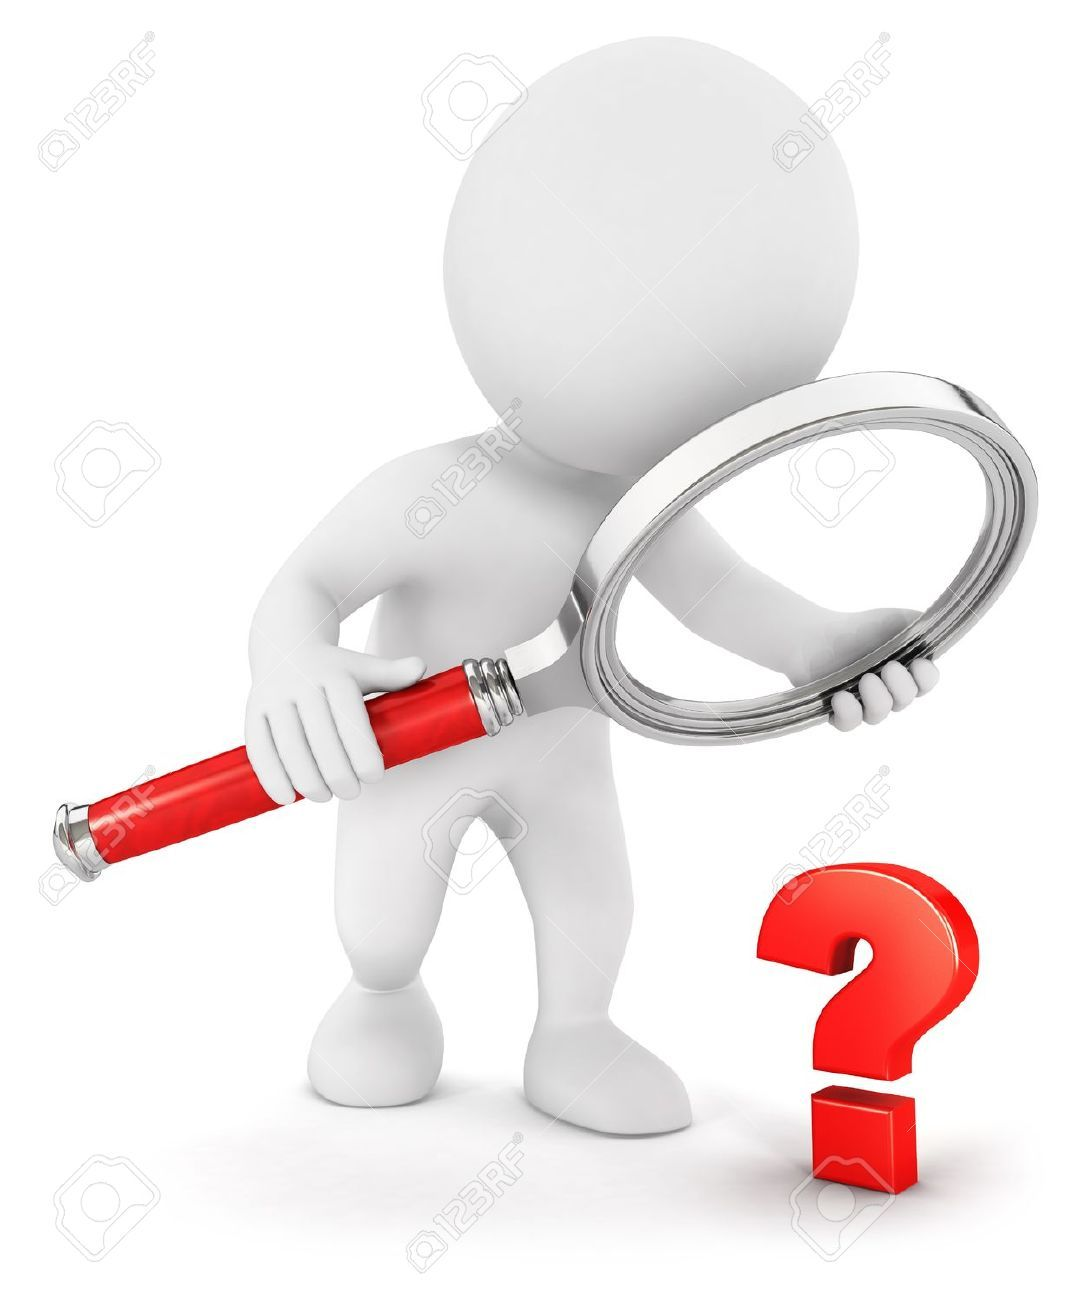 3d person with magnifying glass and question mark stock images image - Royalty Free Question Marks Photos And Stock Photography